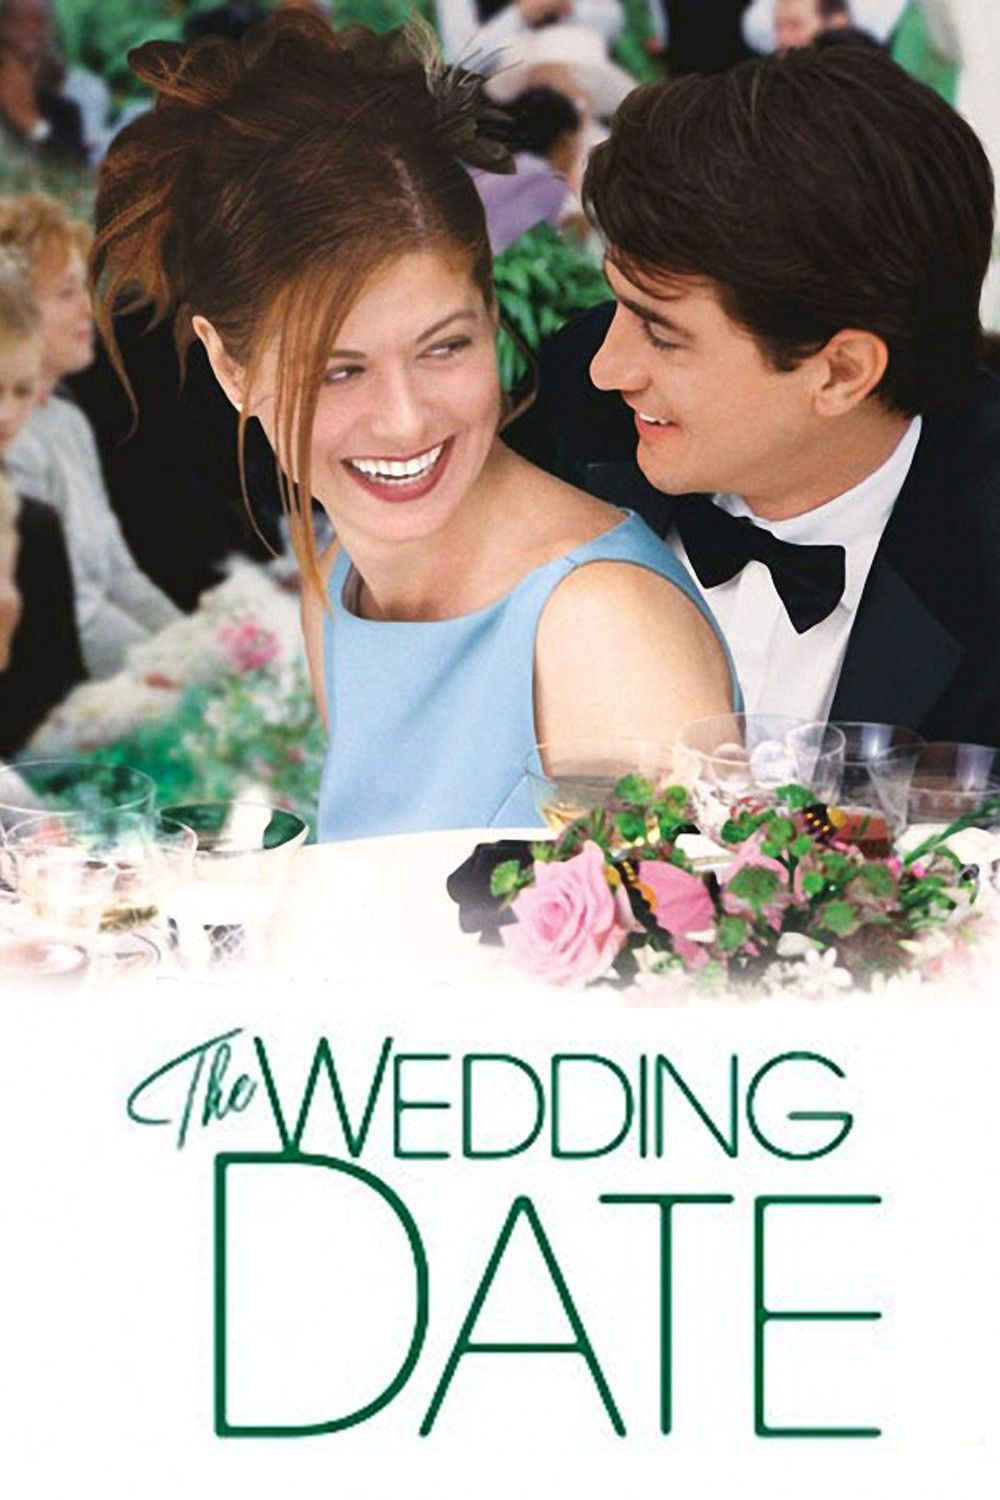 Our Top 10 Favorite Wedding Movies Wedding Movies Full Movies Online Free The Wedding Date